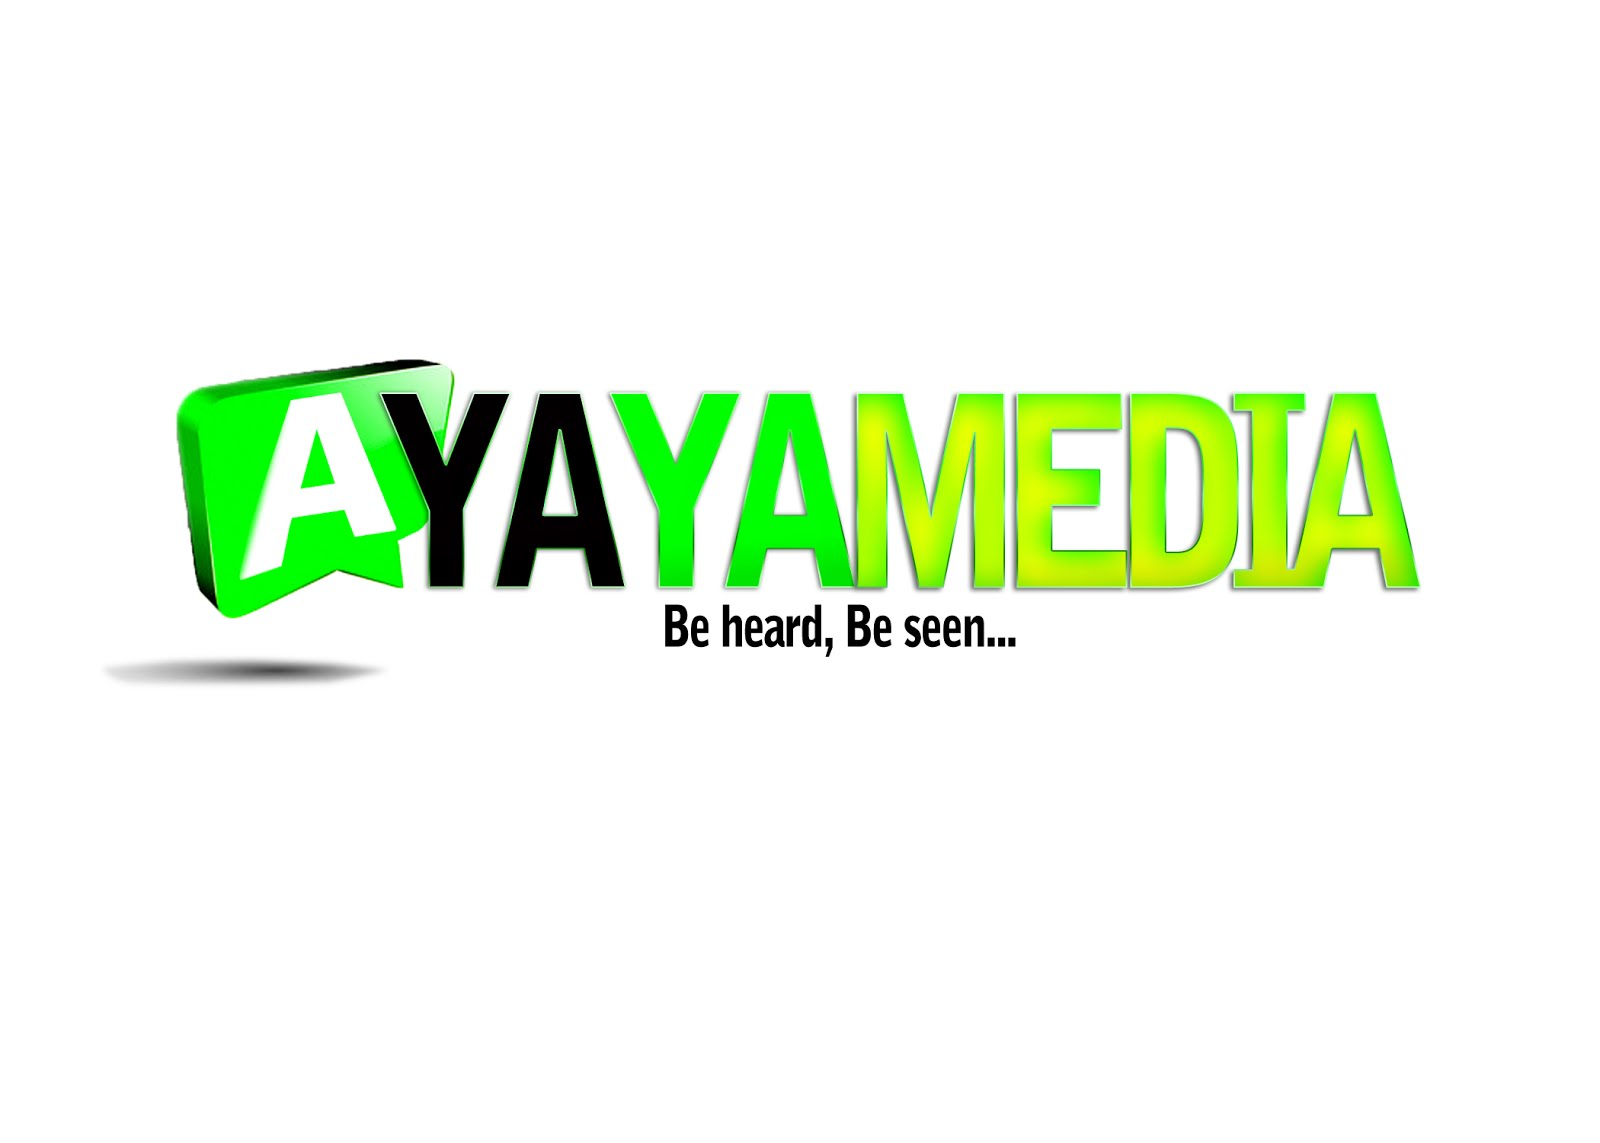 AYAYAMEDIA - Be Heard Be Seen !